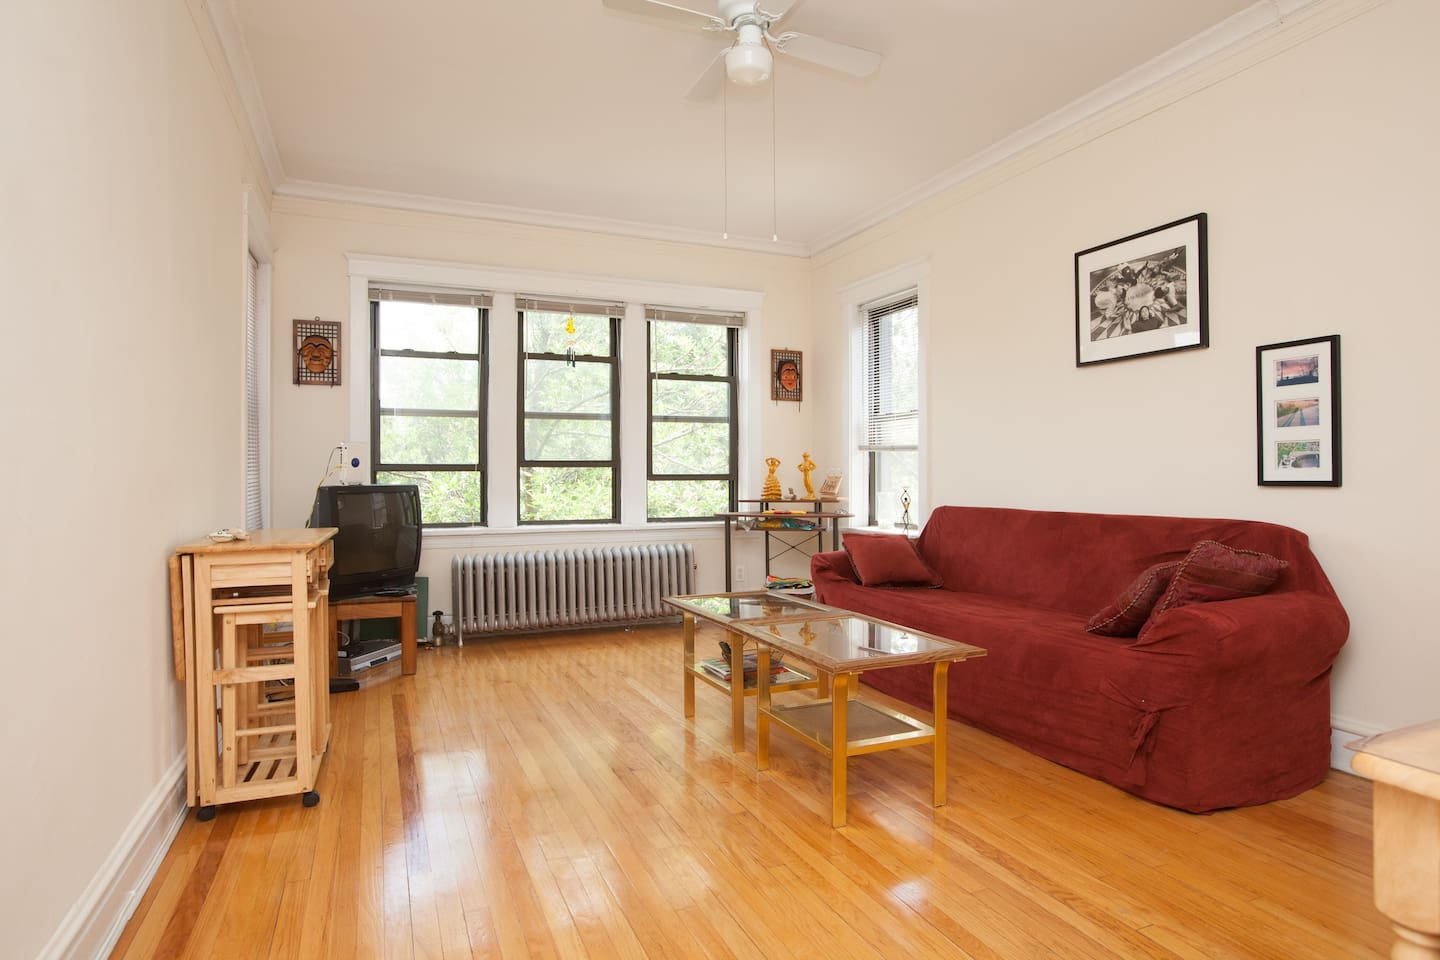 Spacious living area equipped with television, cable, and DVD/VCR player for entertaining.